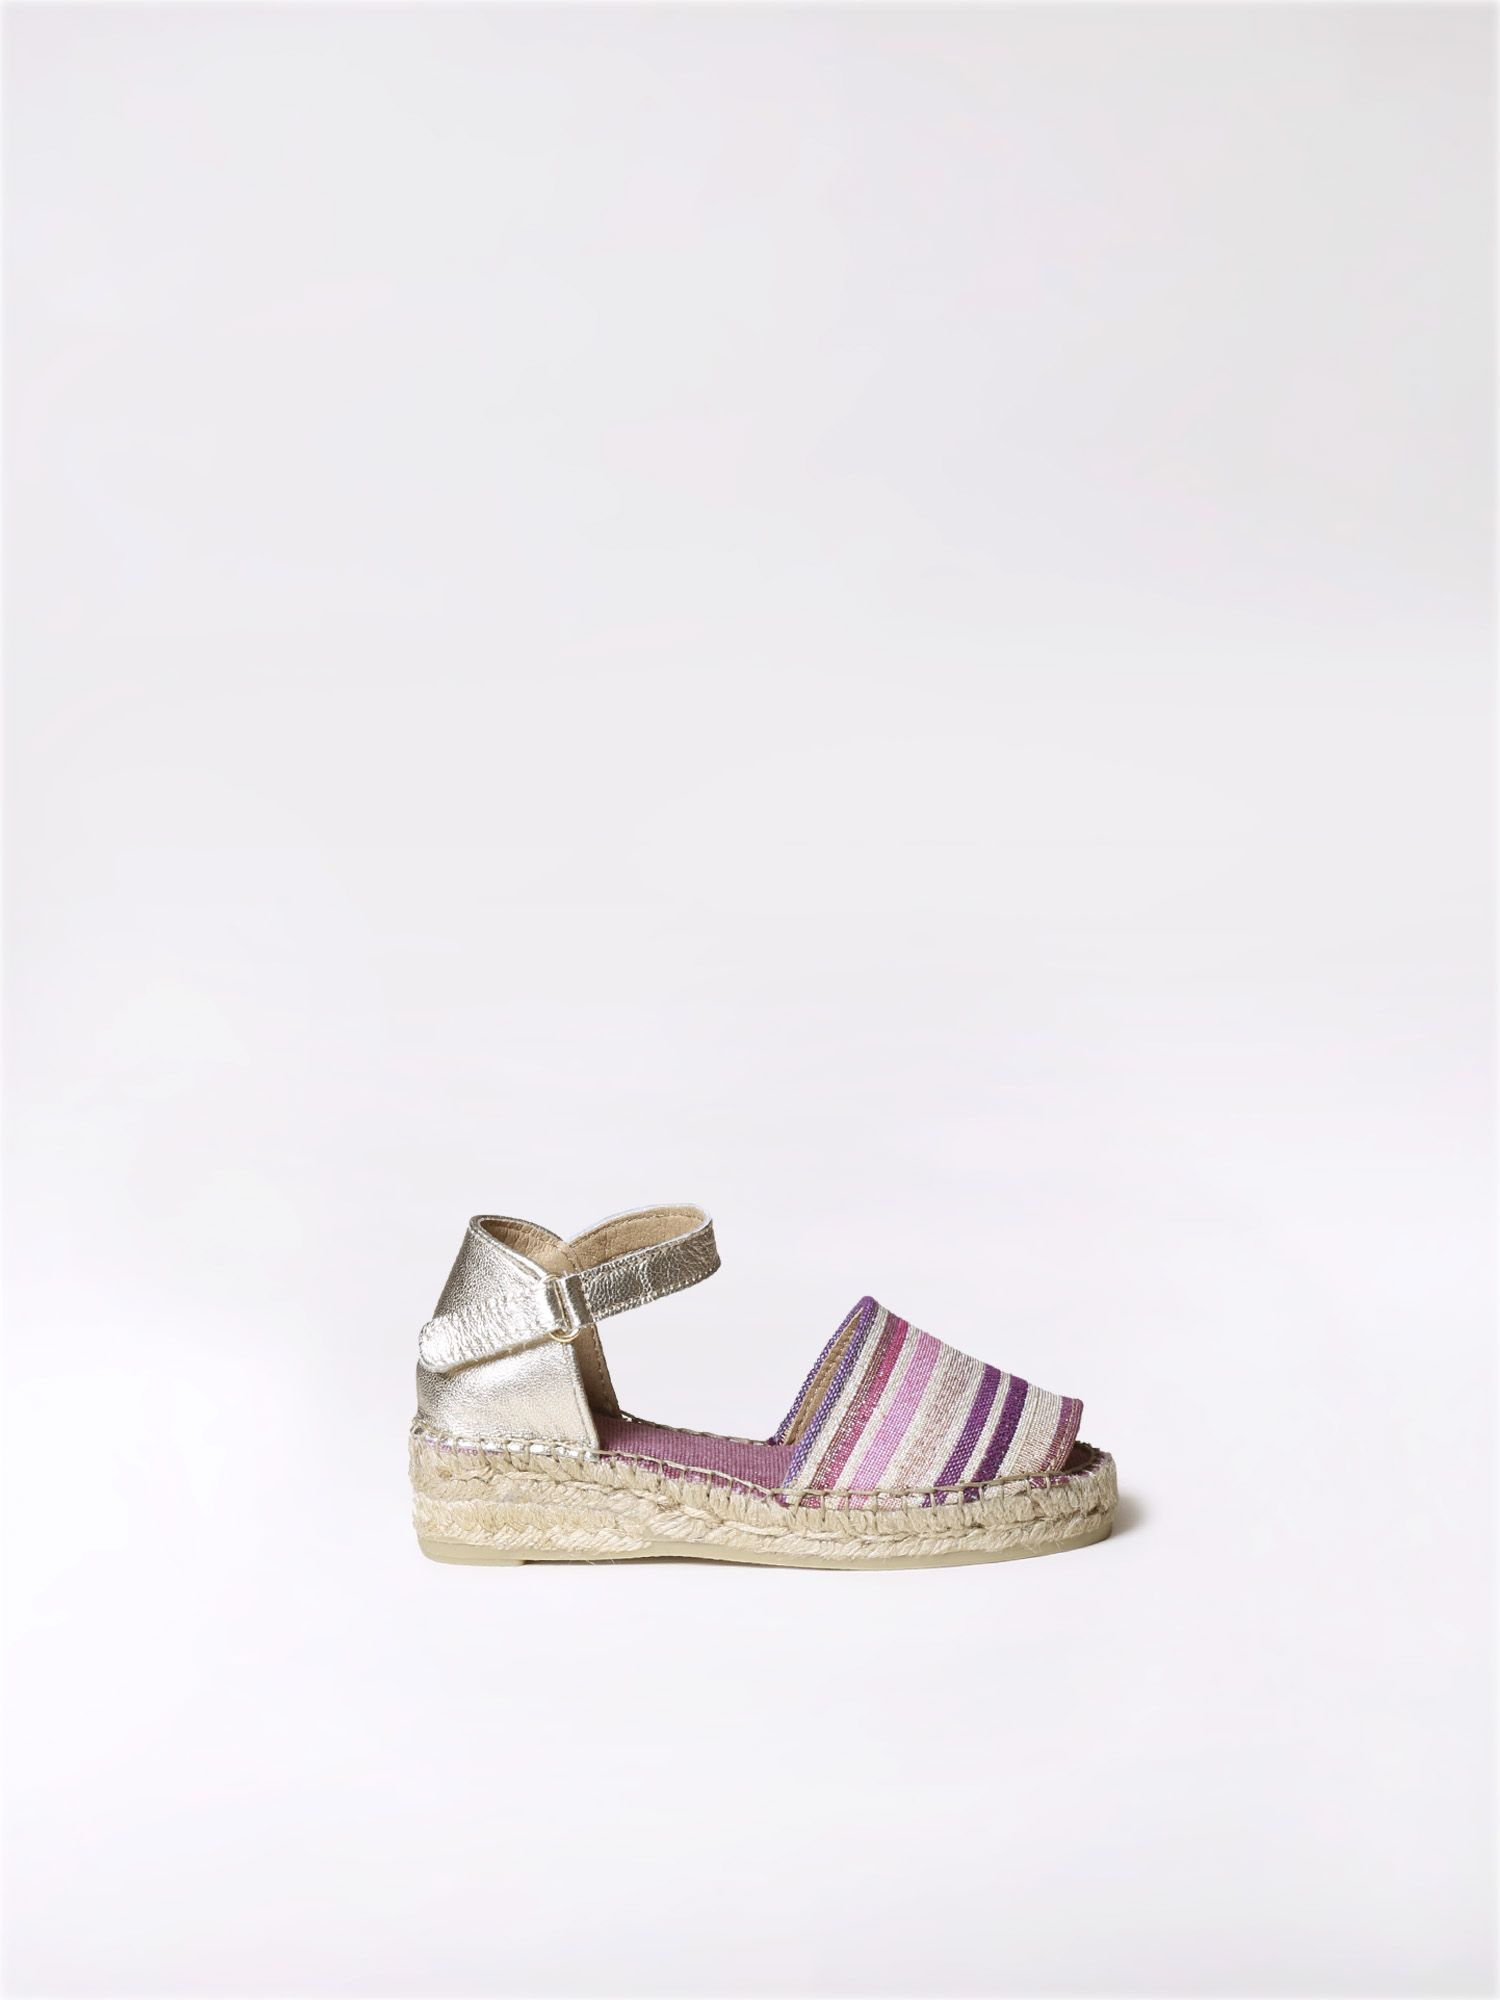 Kids striped sandals - ERIN-MD